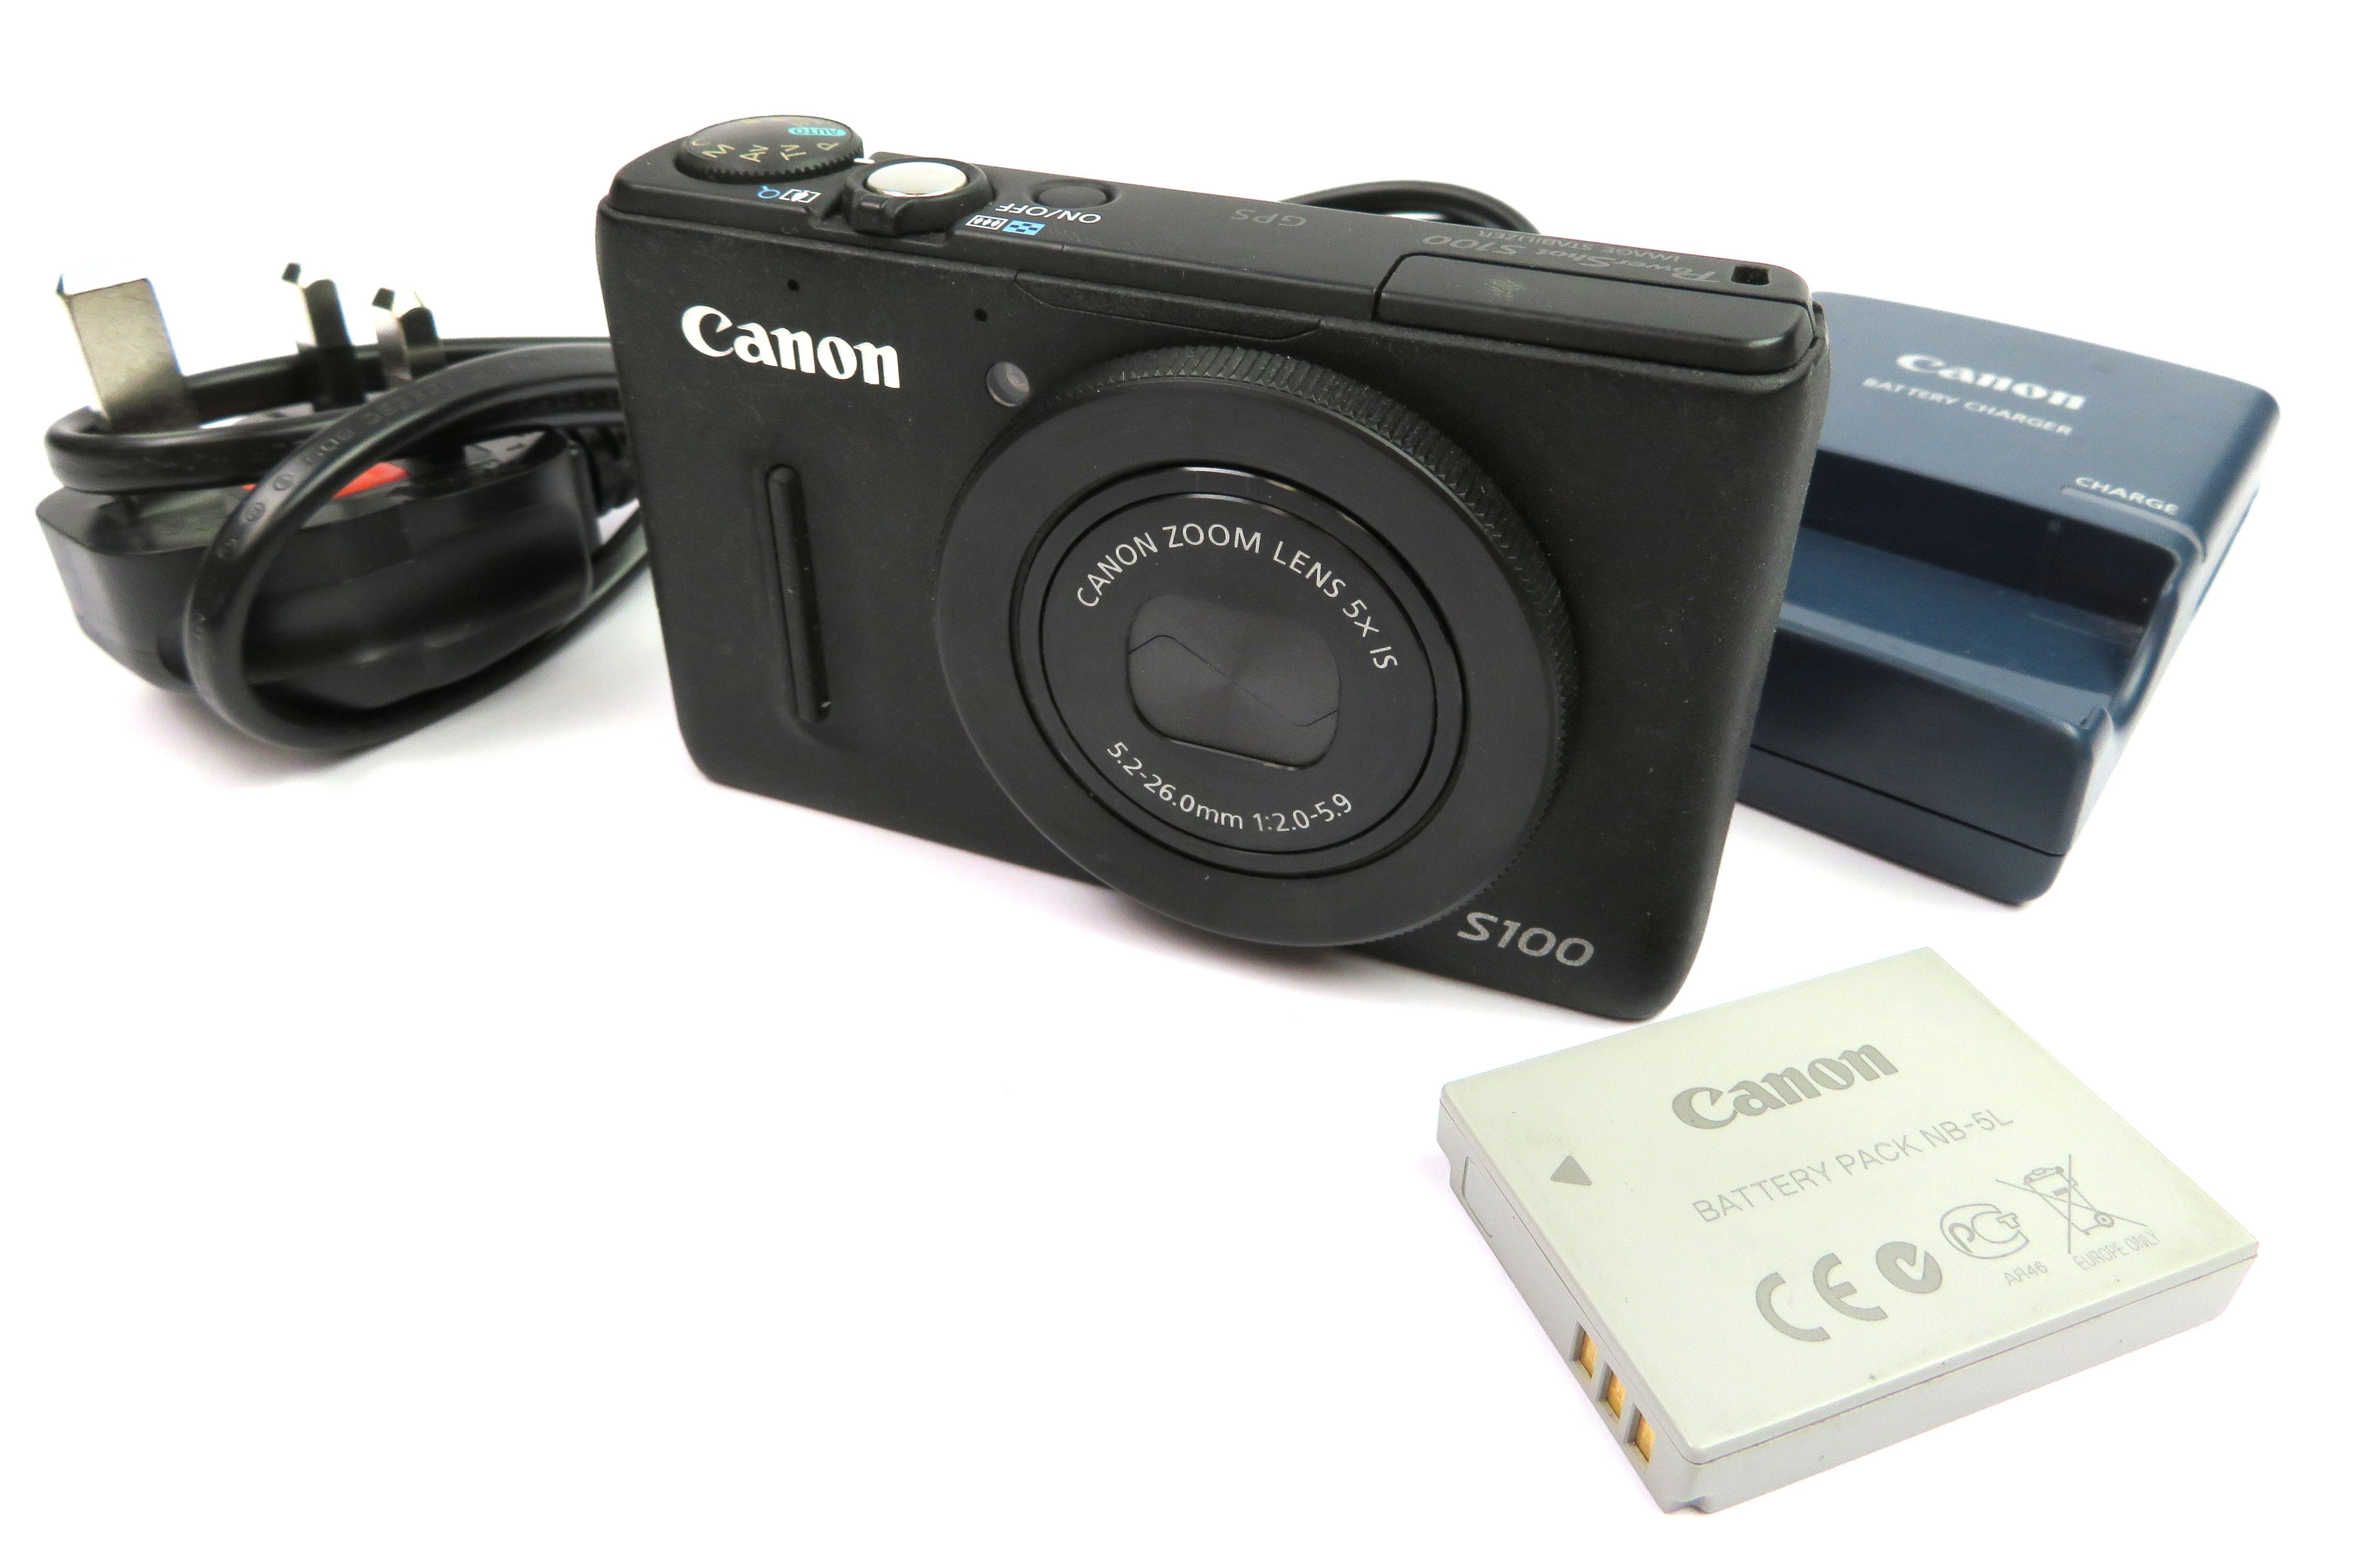 Canon PowerSHot S100 PC1675 High End Super Compact Camera - SN:463032012781